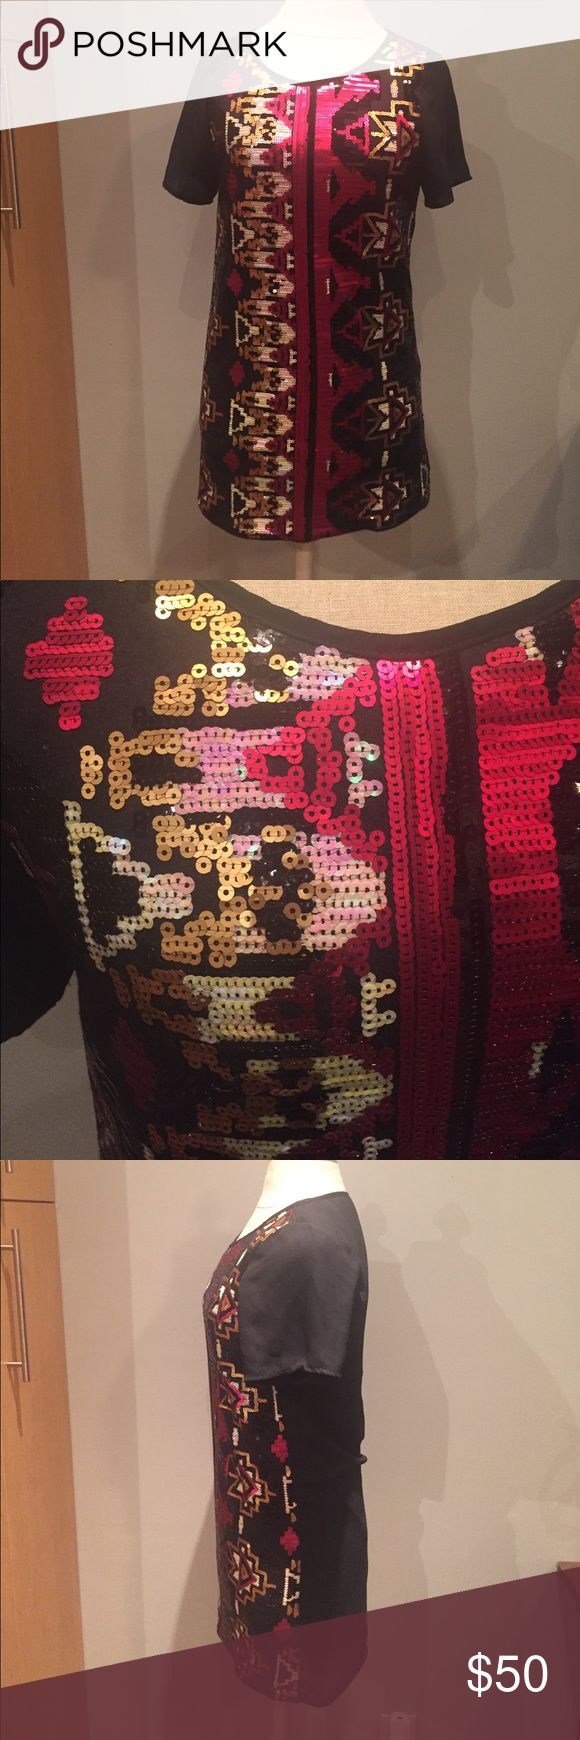 Gorgeous sequin tunic Absolutely stunning sequin tunic. Complete sequin front with beautiful pattern. Solid black back. Long tunic. Could be worn as dress if you are on the shorter side. Worn once. Like new condition. Everly Tops Tunics